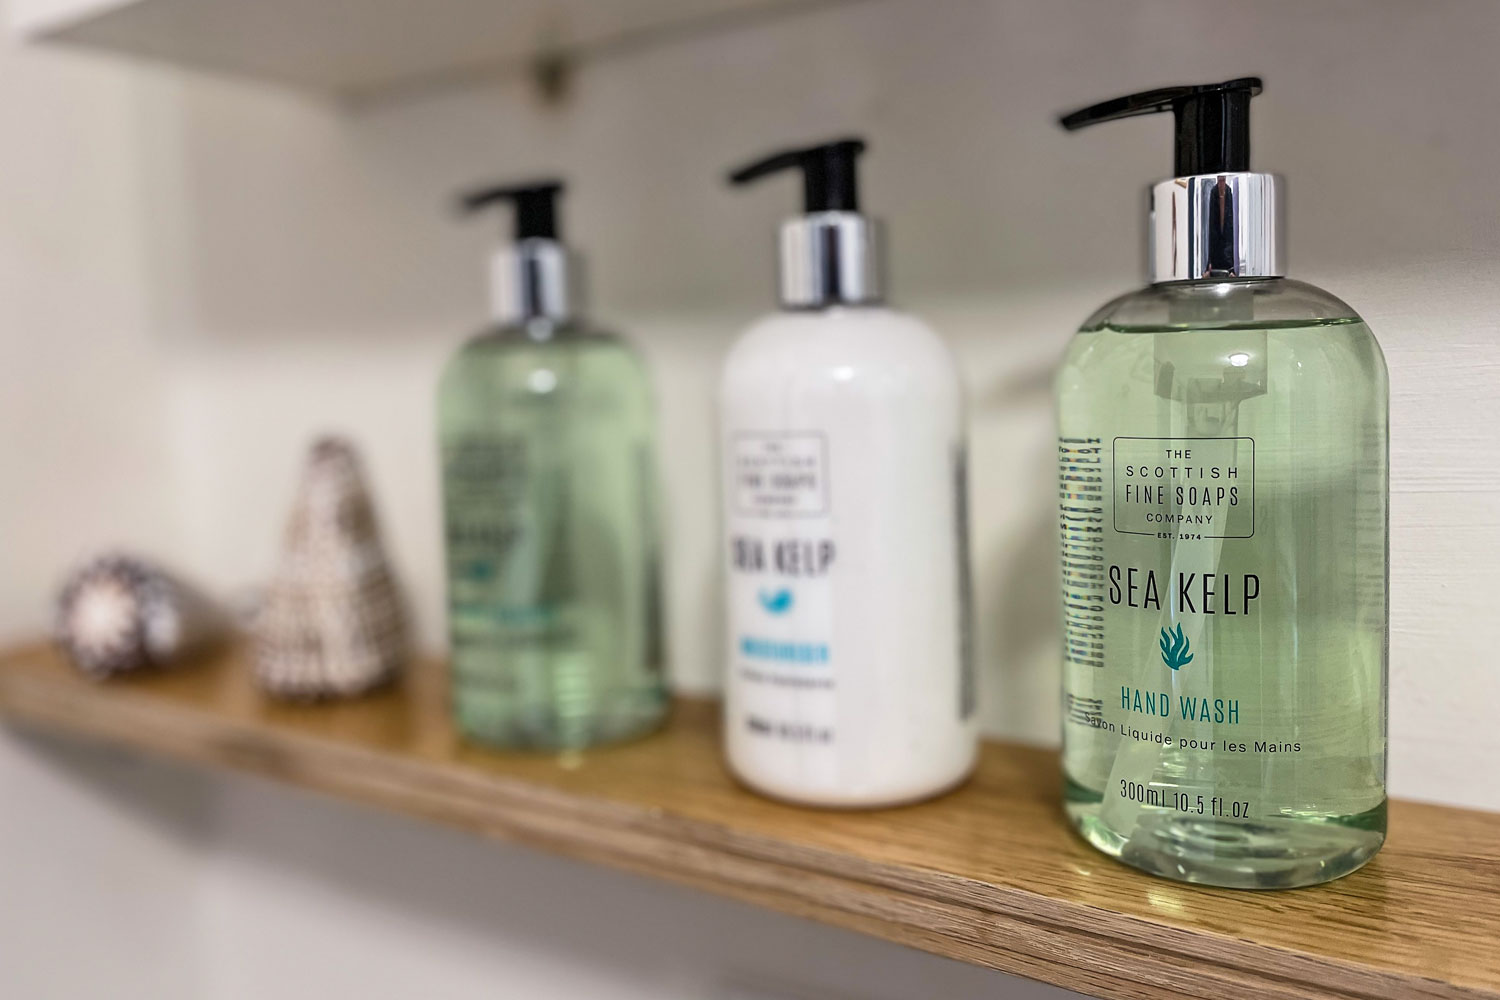 Bathroom Products at the Cottage at Coquet Meadows